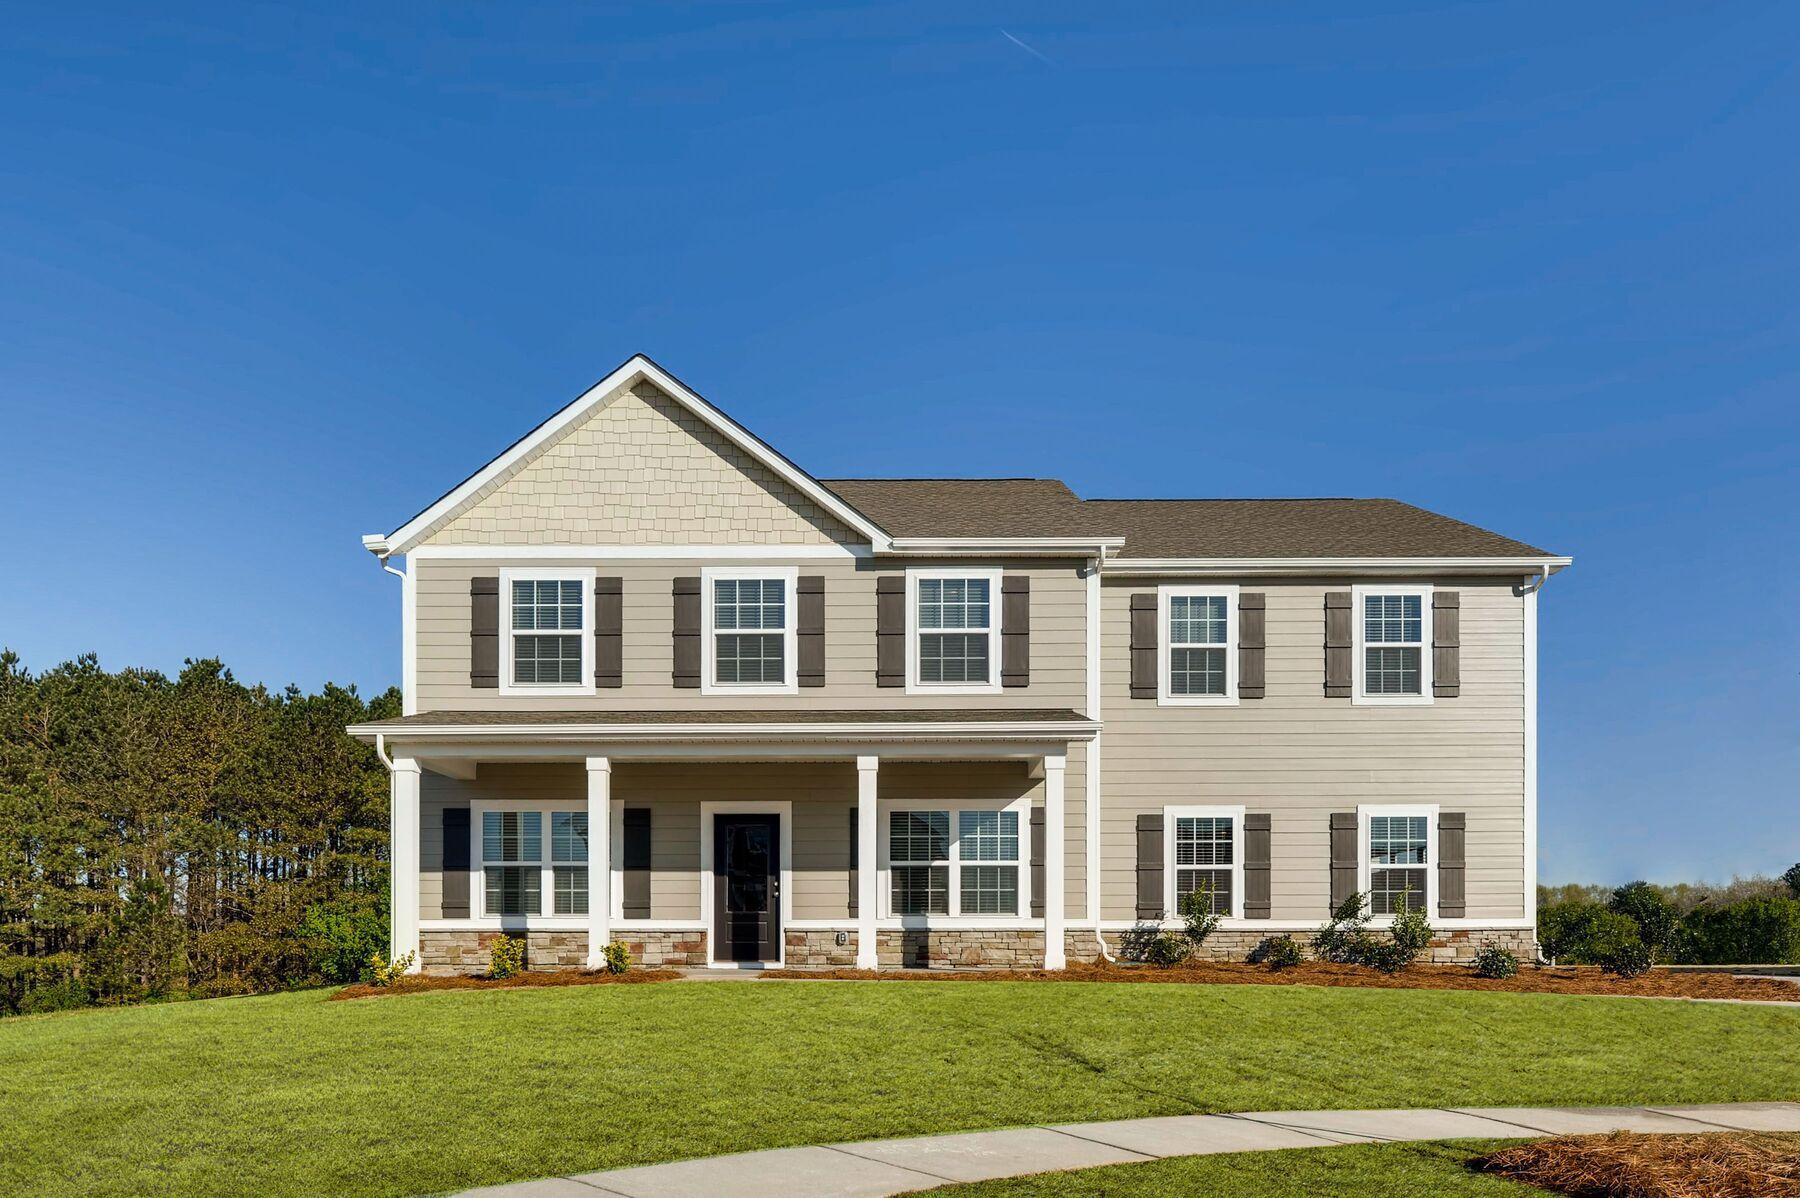 The Sycamore Plan:Gorgeous 5 bed/4 bath home with flex space, loft & guest suite.